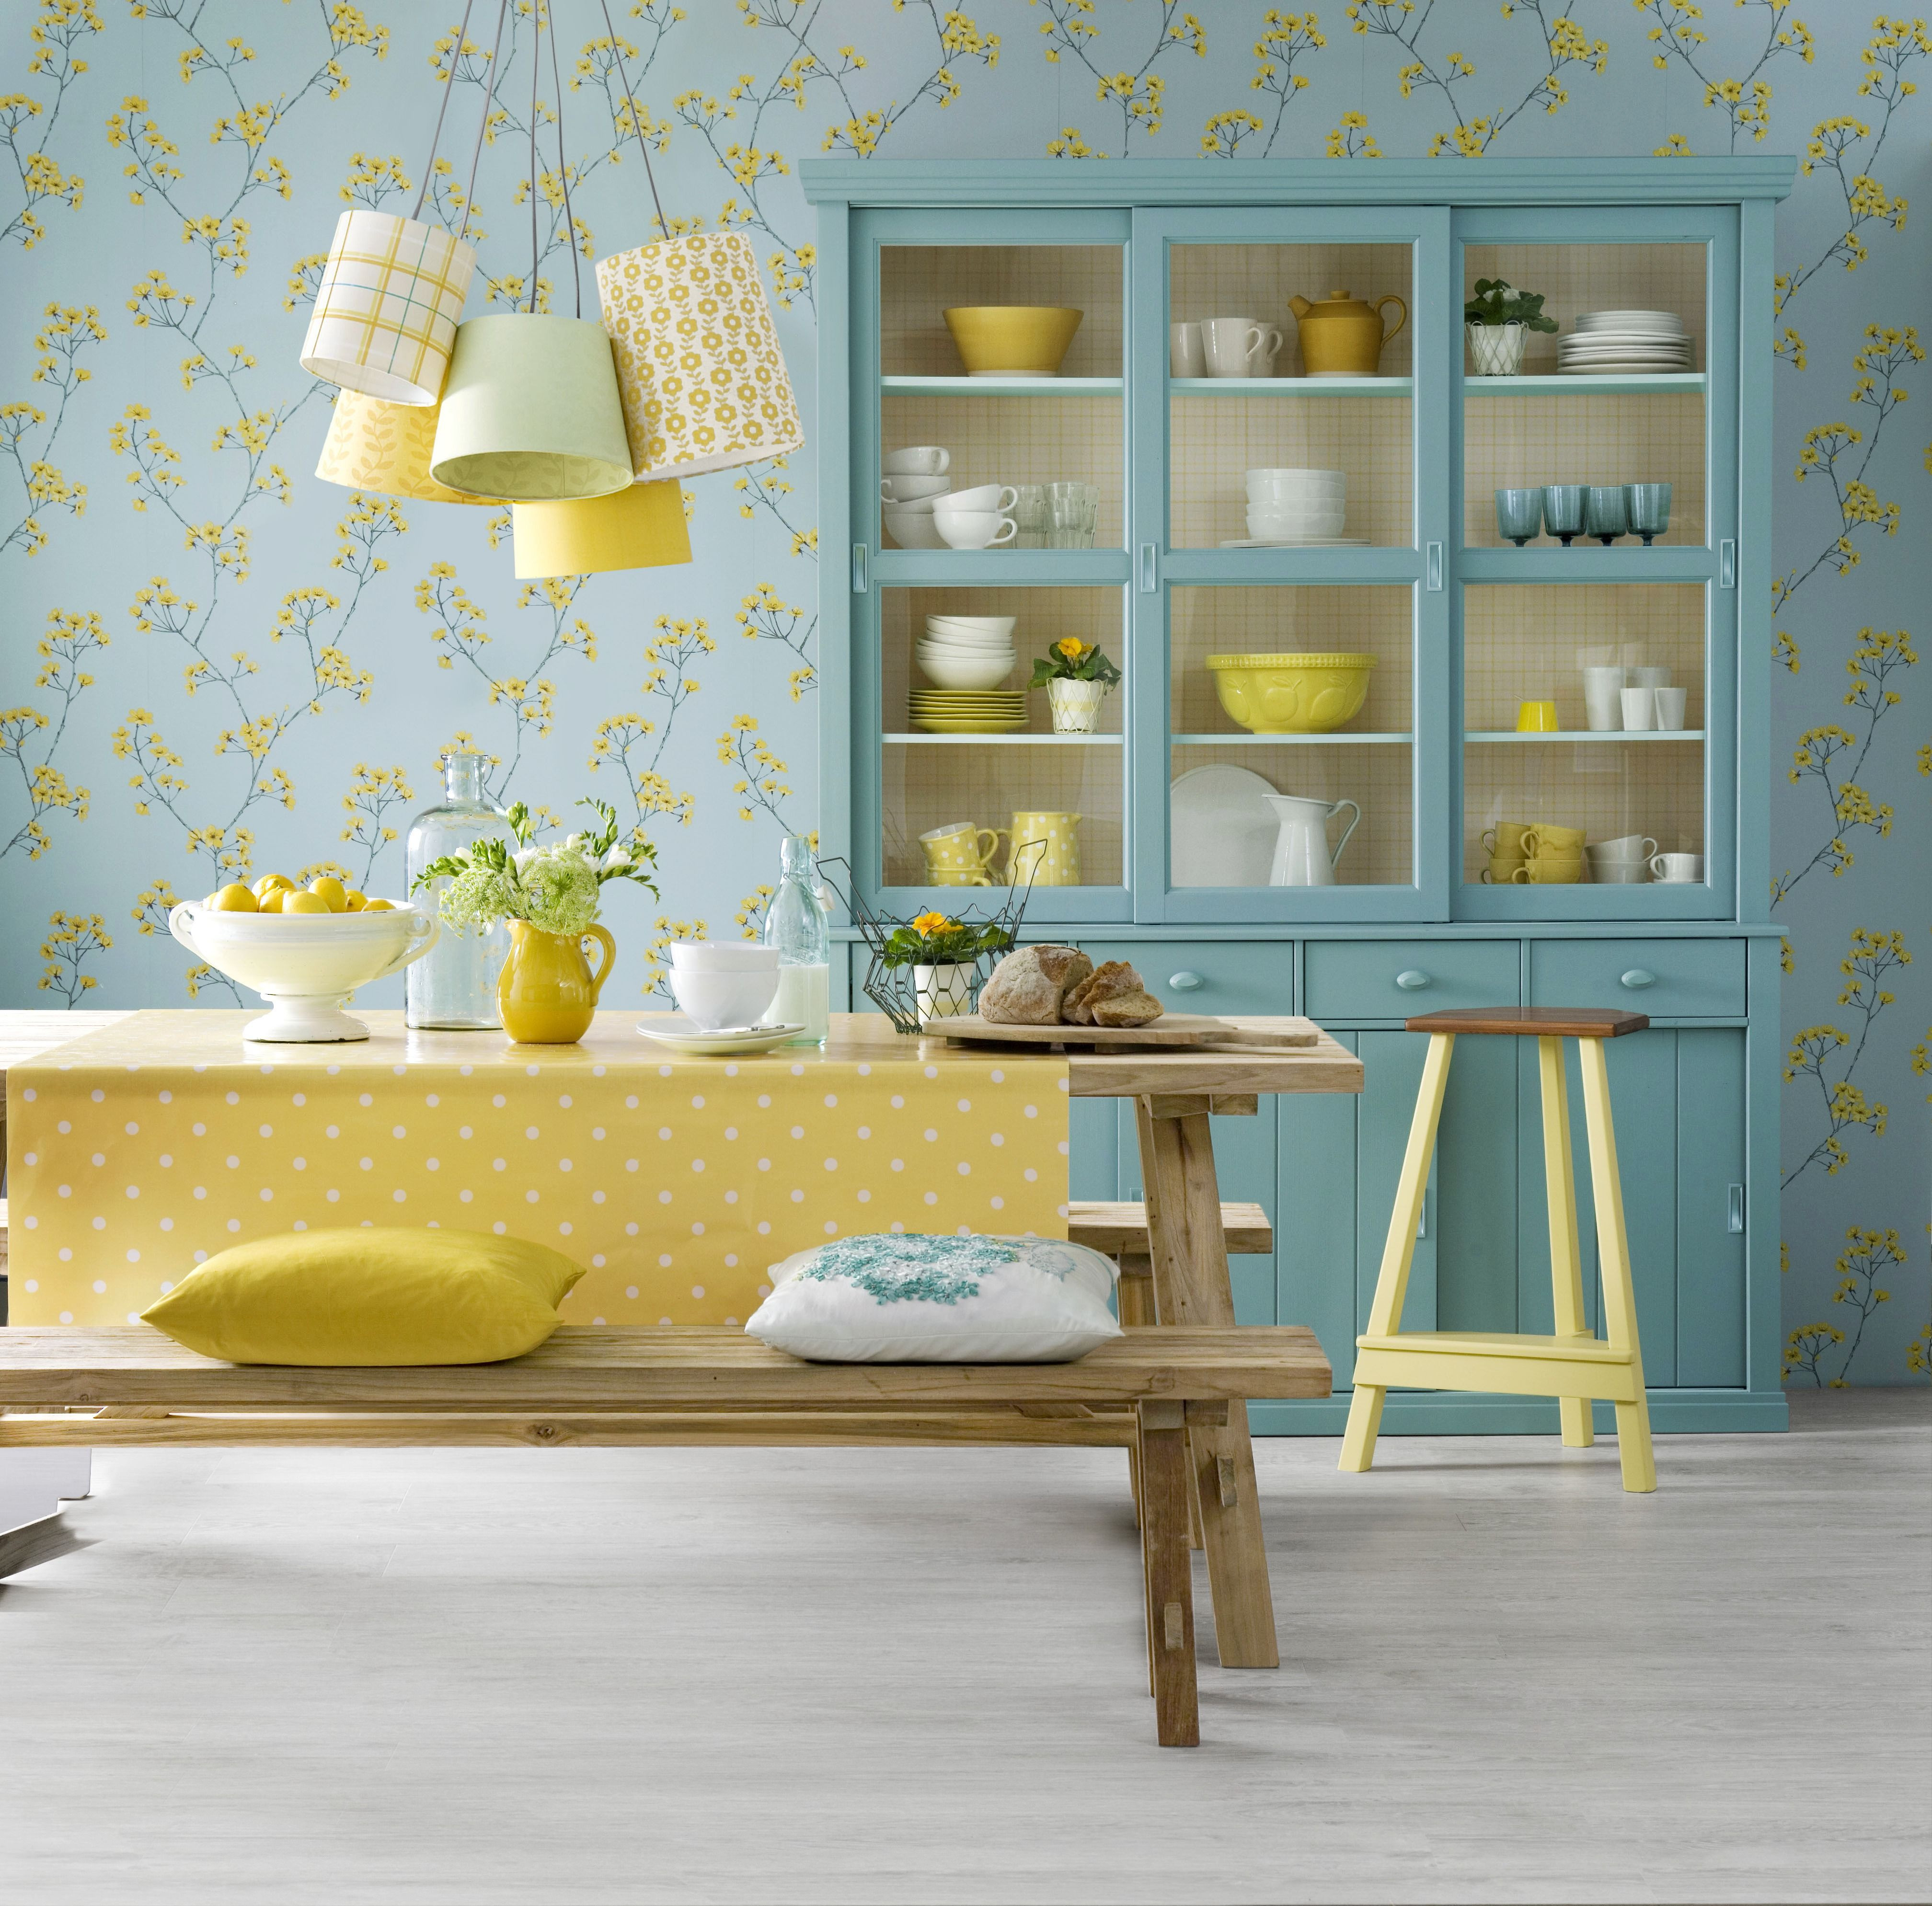 15 Beautiful Ways to Decorate Your Kitchen With Wallpaper